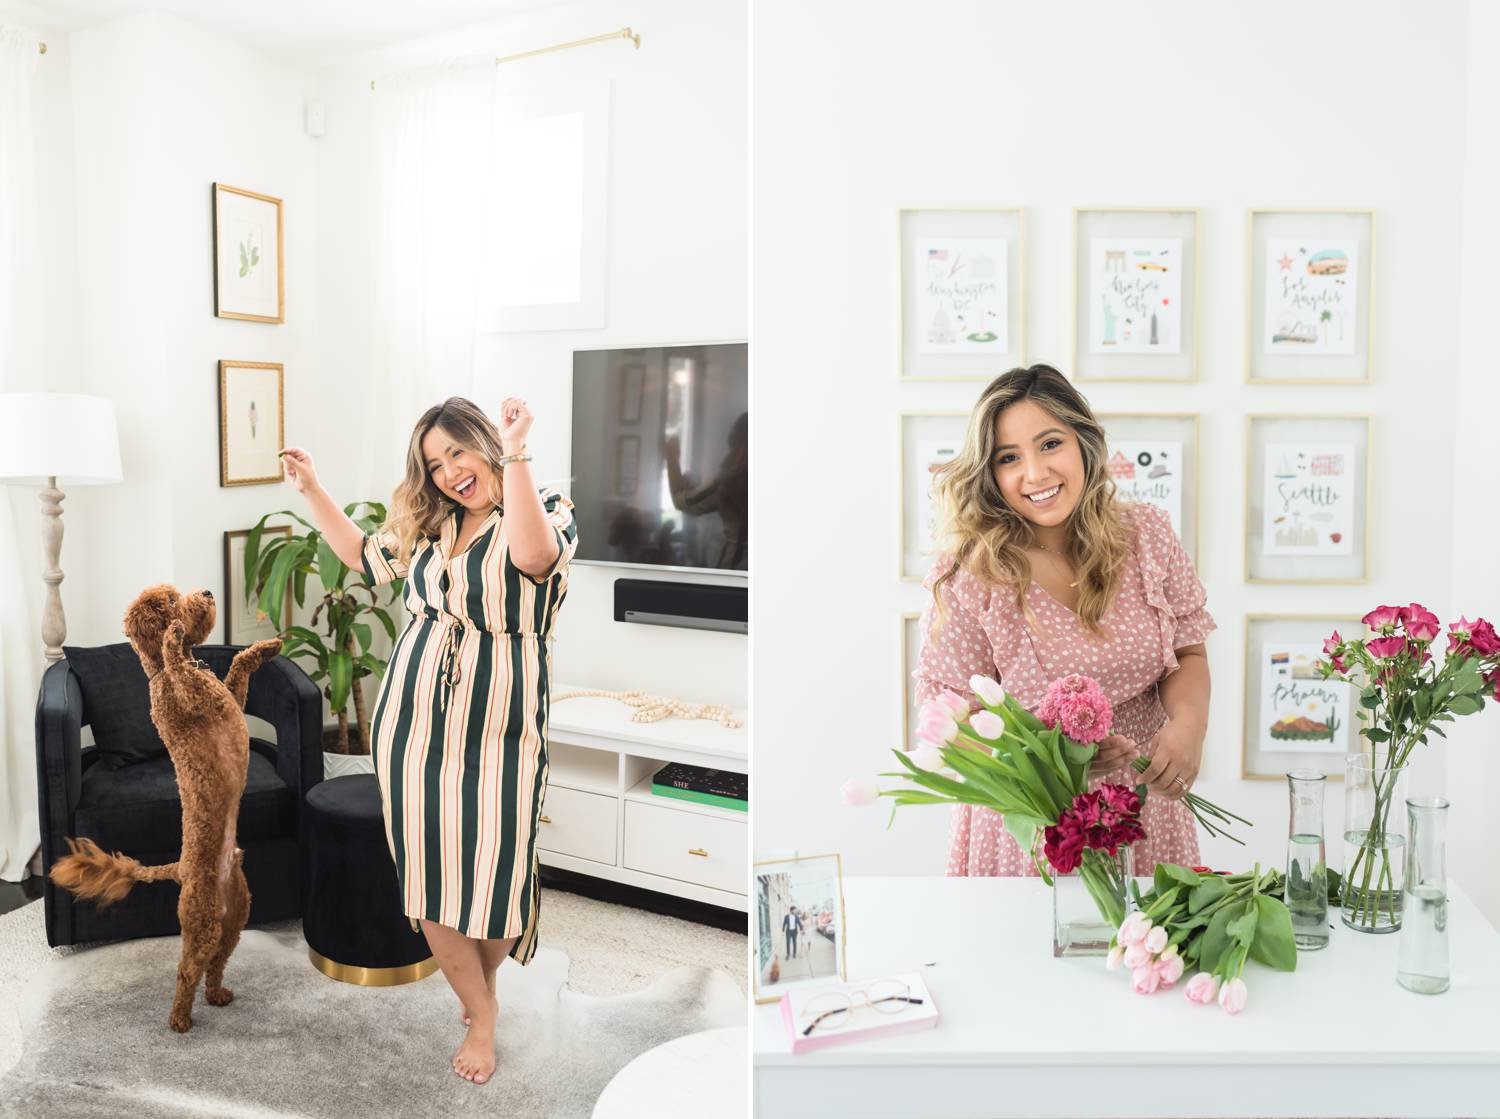 By Mandy Liz: In one photo, a CEO dances in her living room with her dog. In the next photo, the same woman is cutting flowers for her desk. Her business generates excellent client feedback.